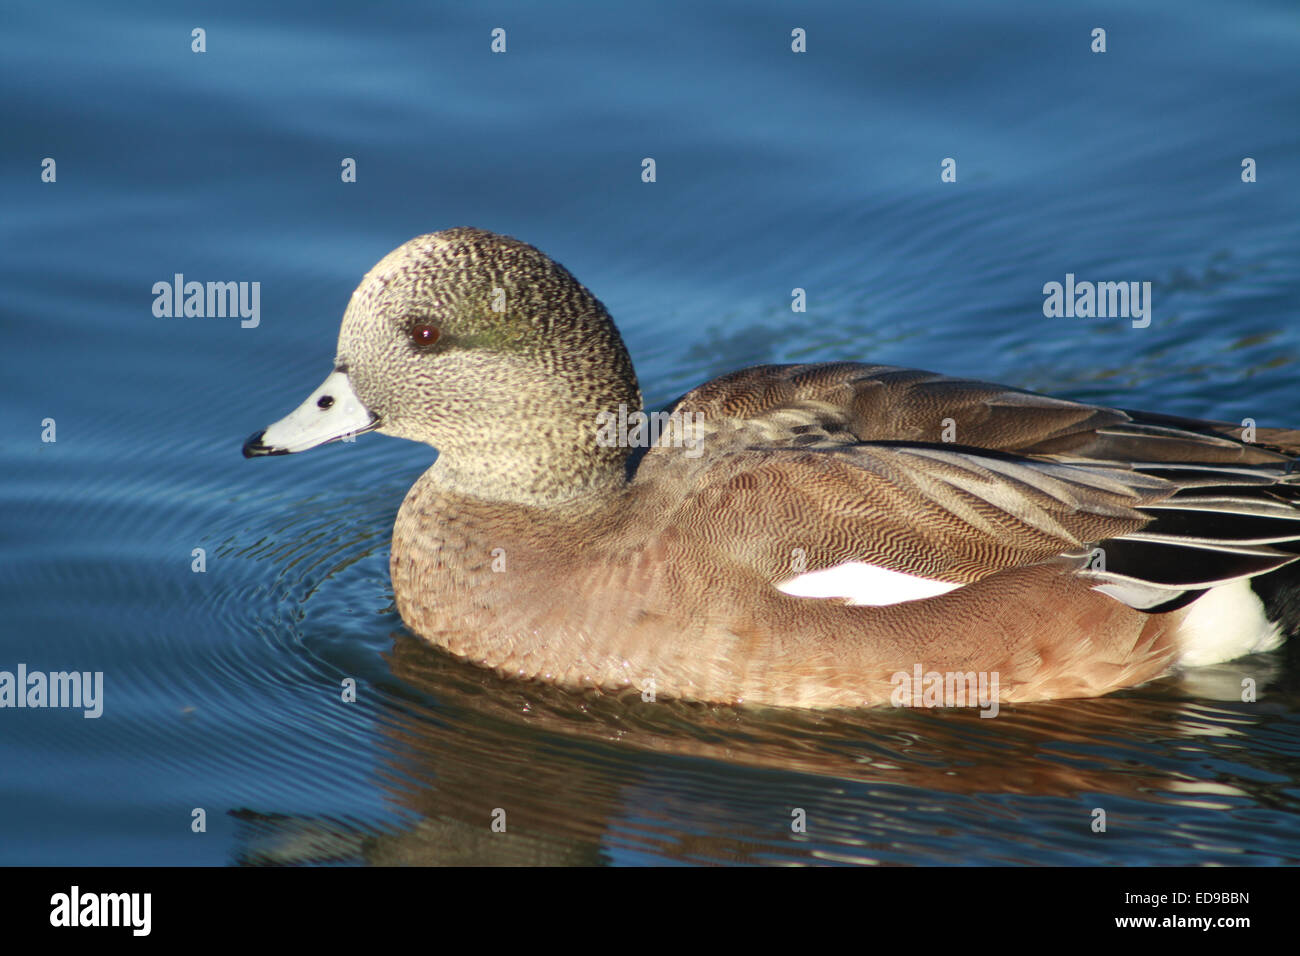 Juvenile Male American Widgeon Duck Swimming on Pond in Southern California Stock Photo